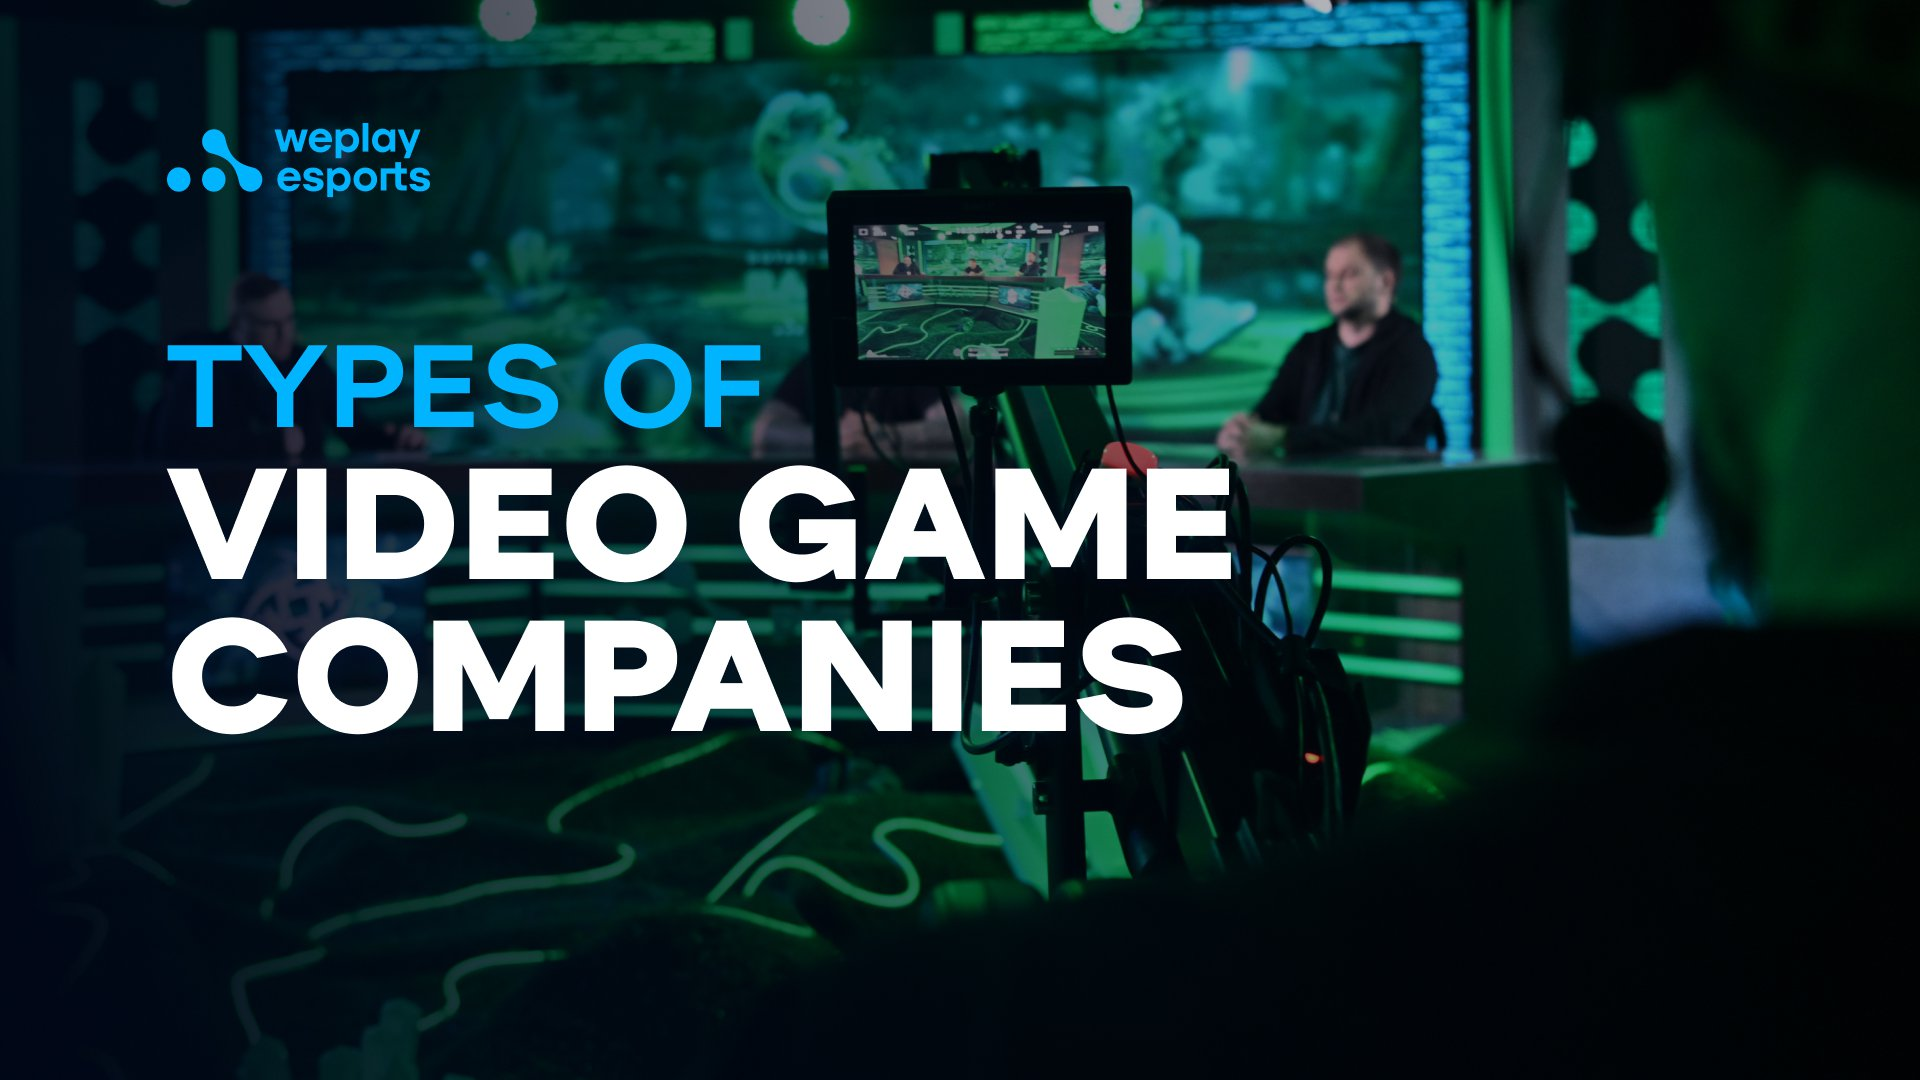 Types of Video Game Companies